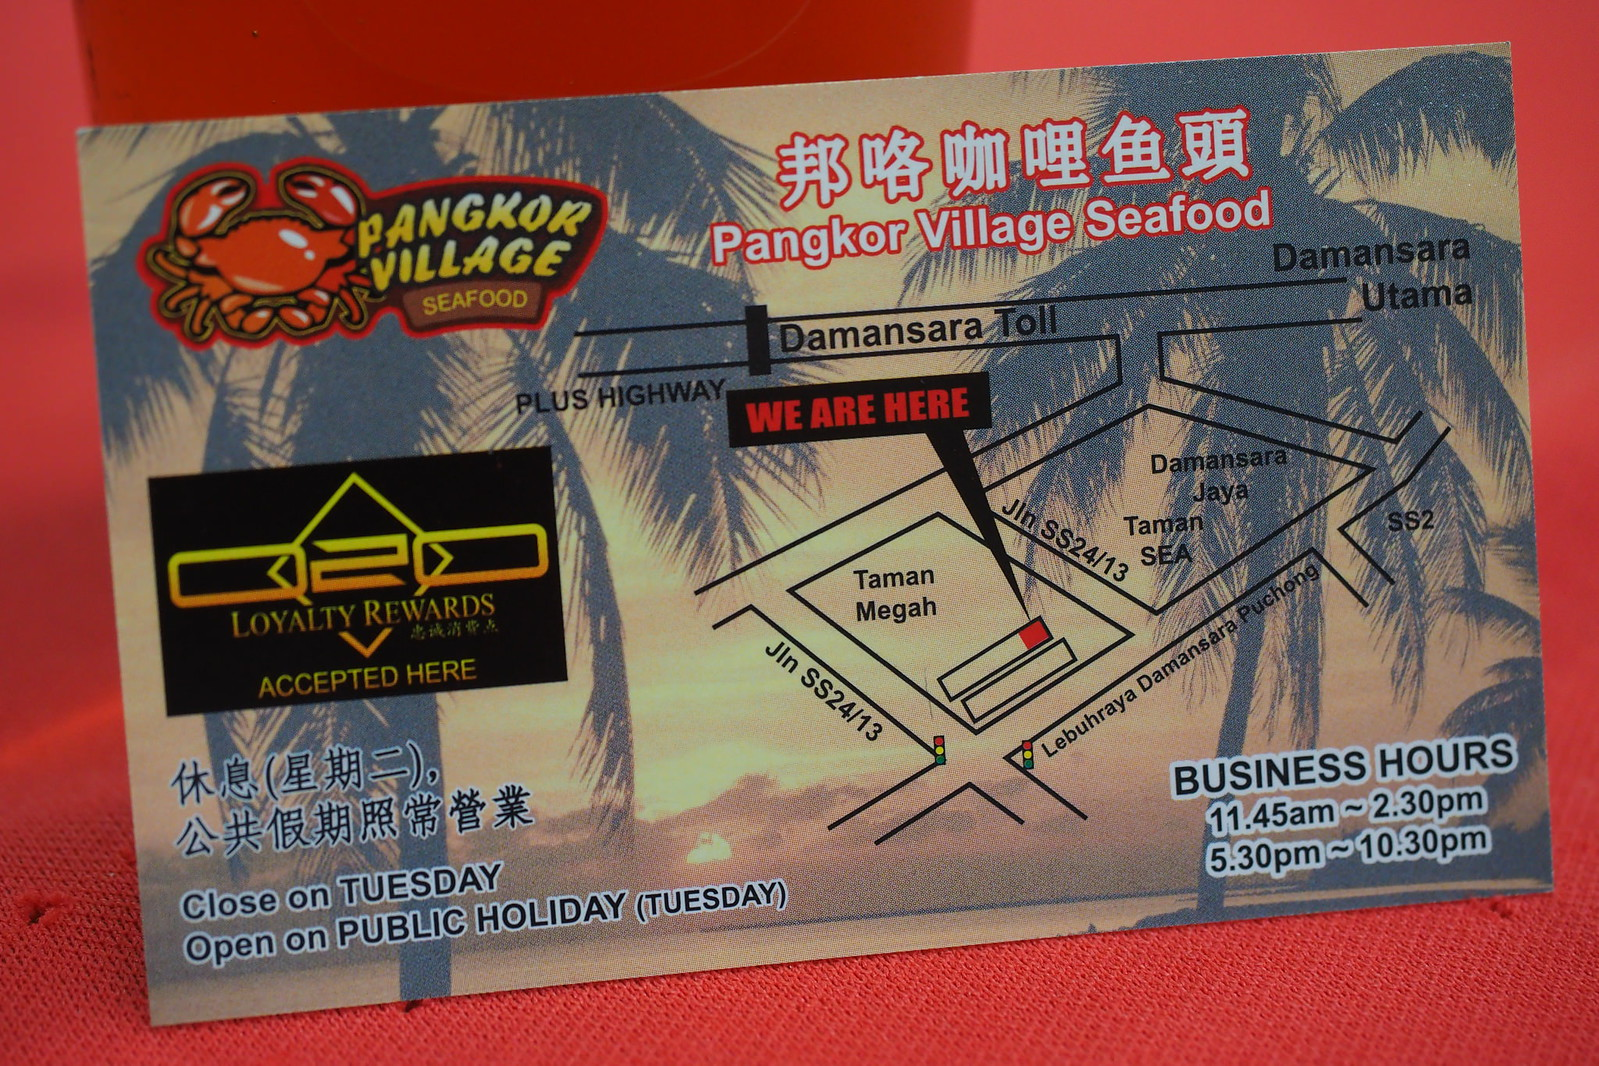 Name card of Pangkor Village Seafood, Taman Megah